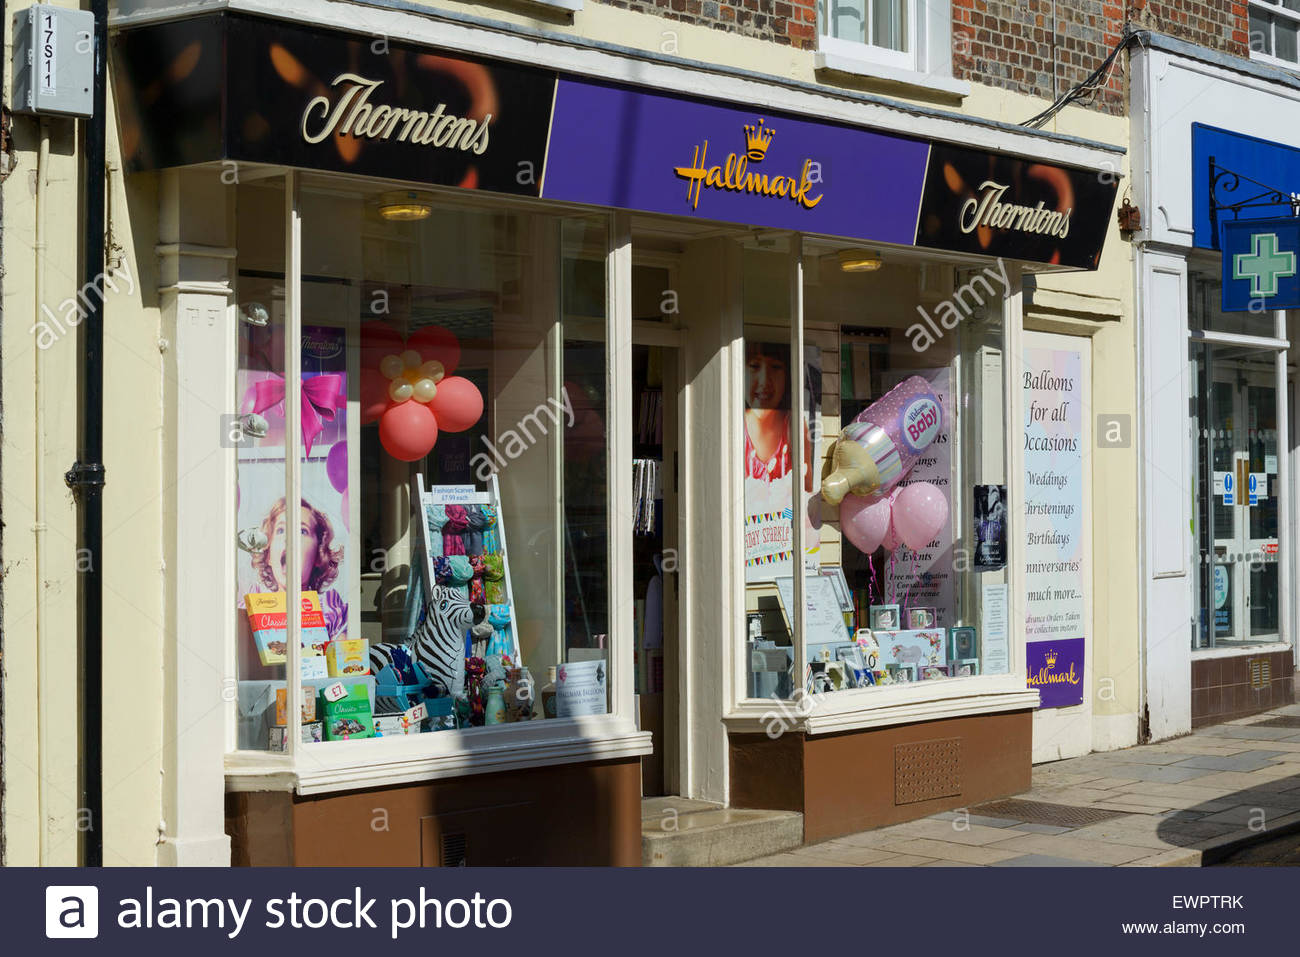 Thorntons and Hallmark cards and gifts shop, Blandford Forum, Dorset England